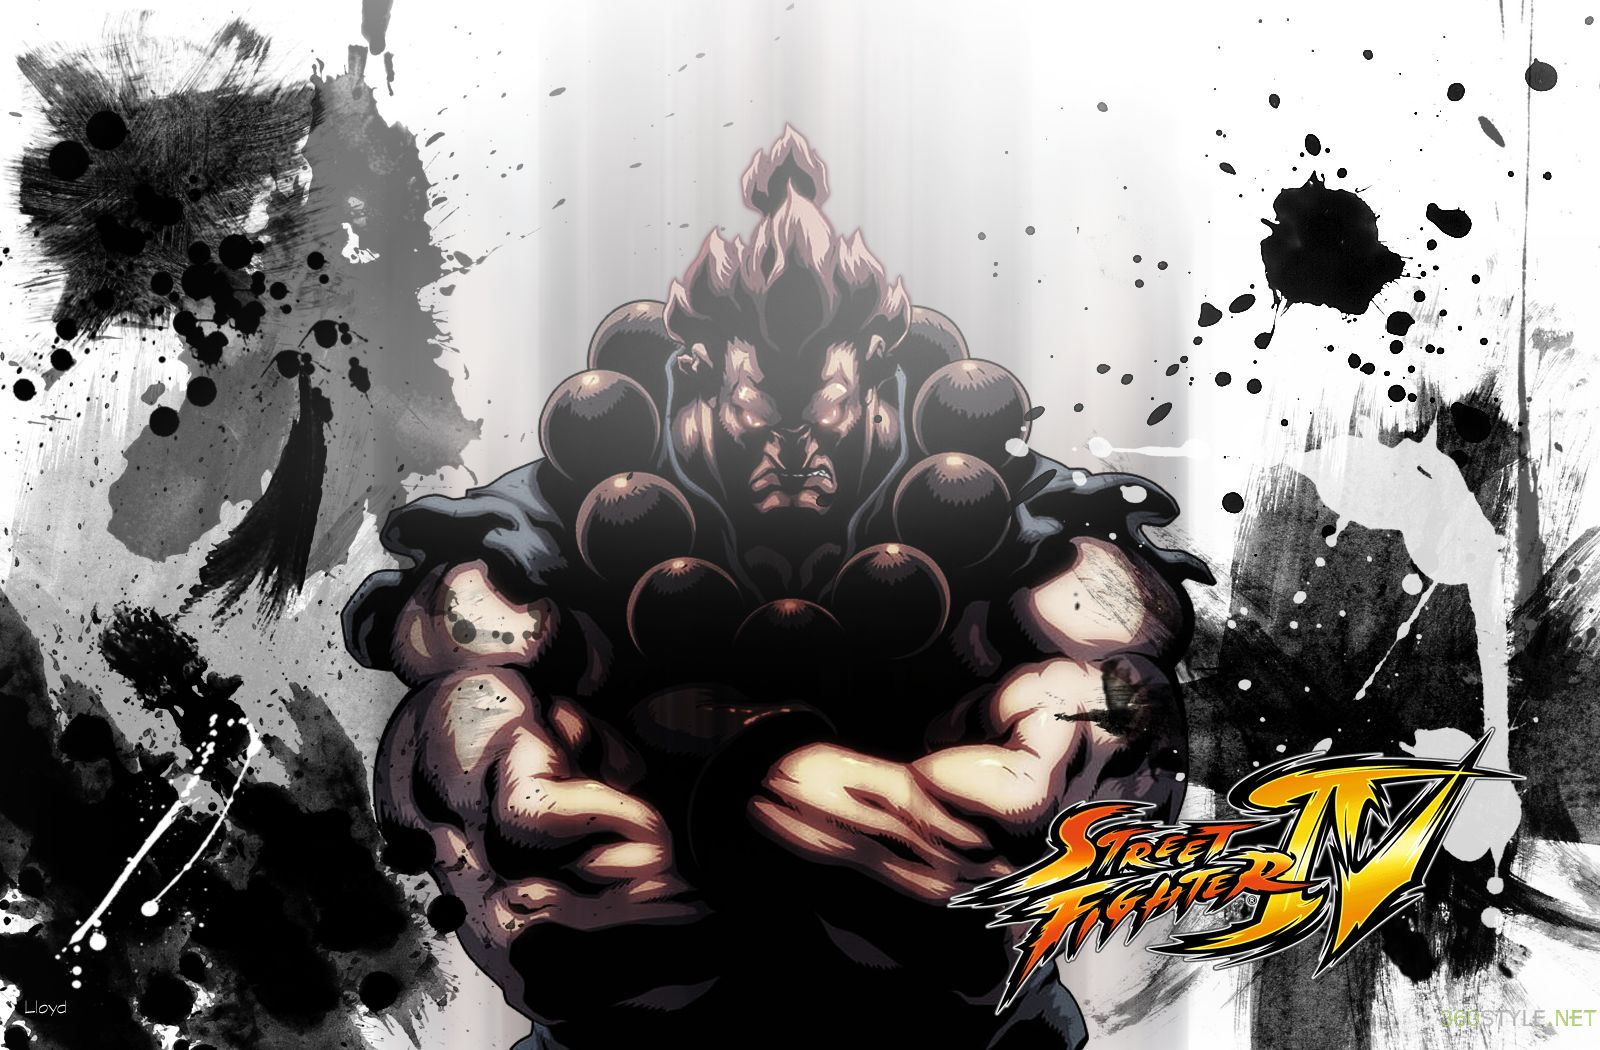 Street Fighter IV Wallpapers HD